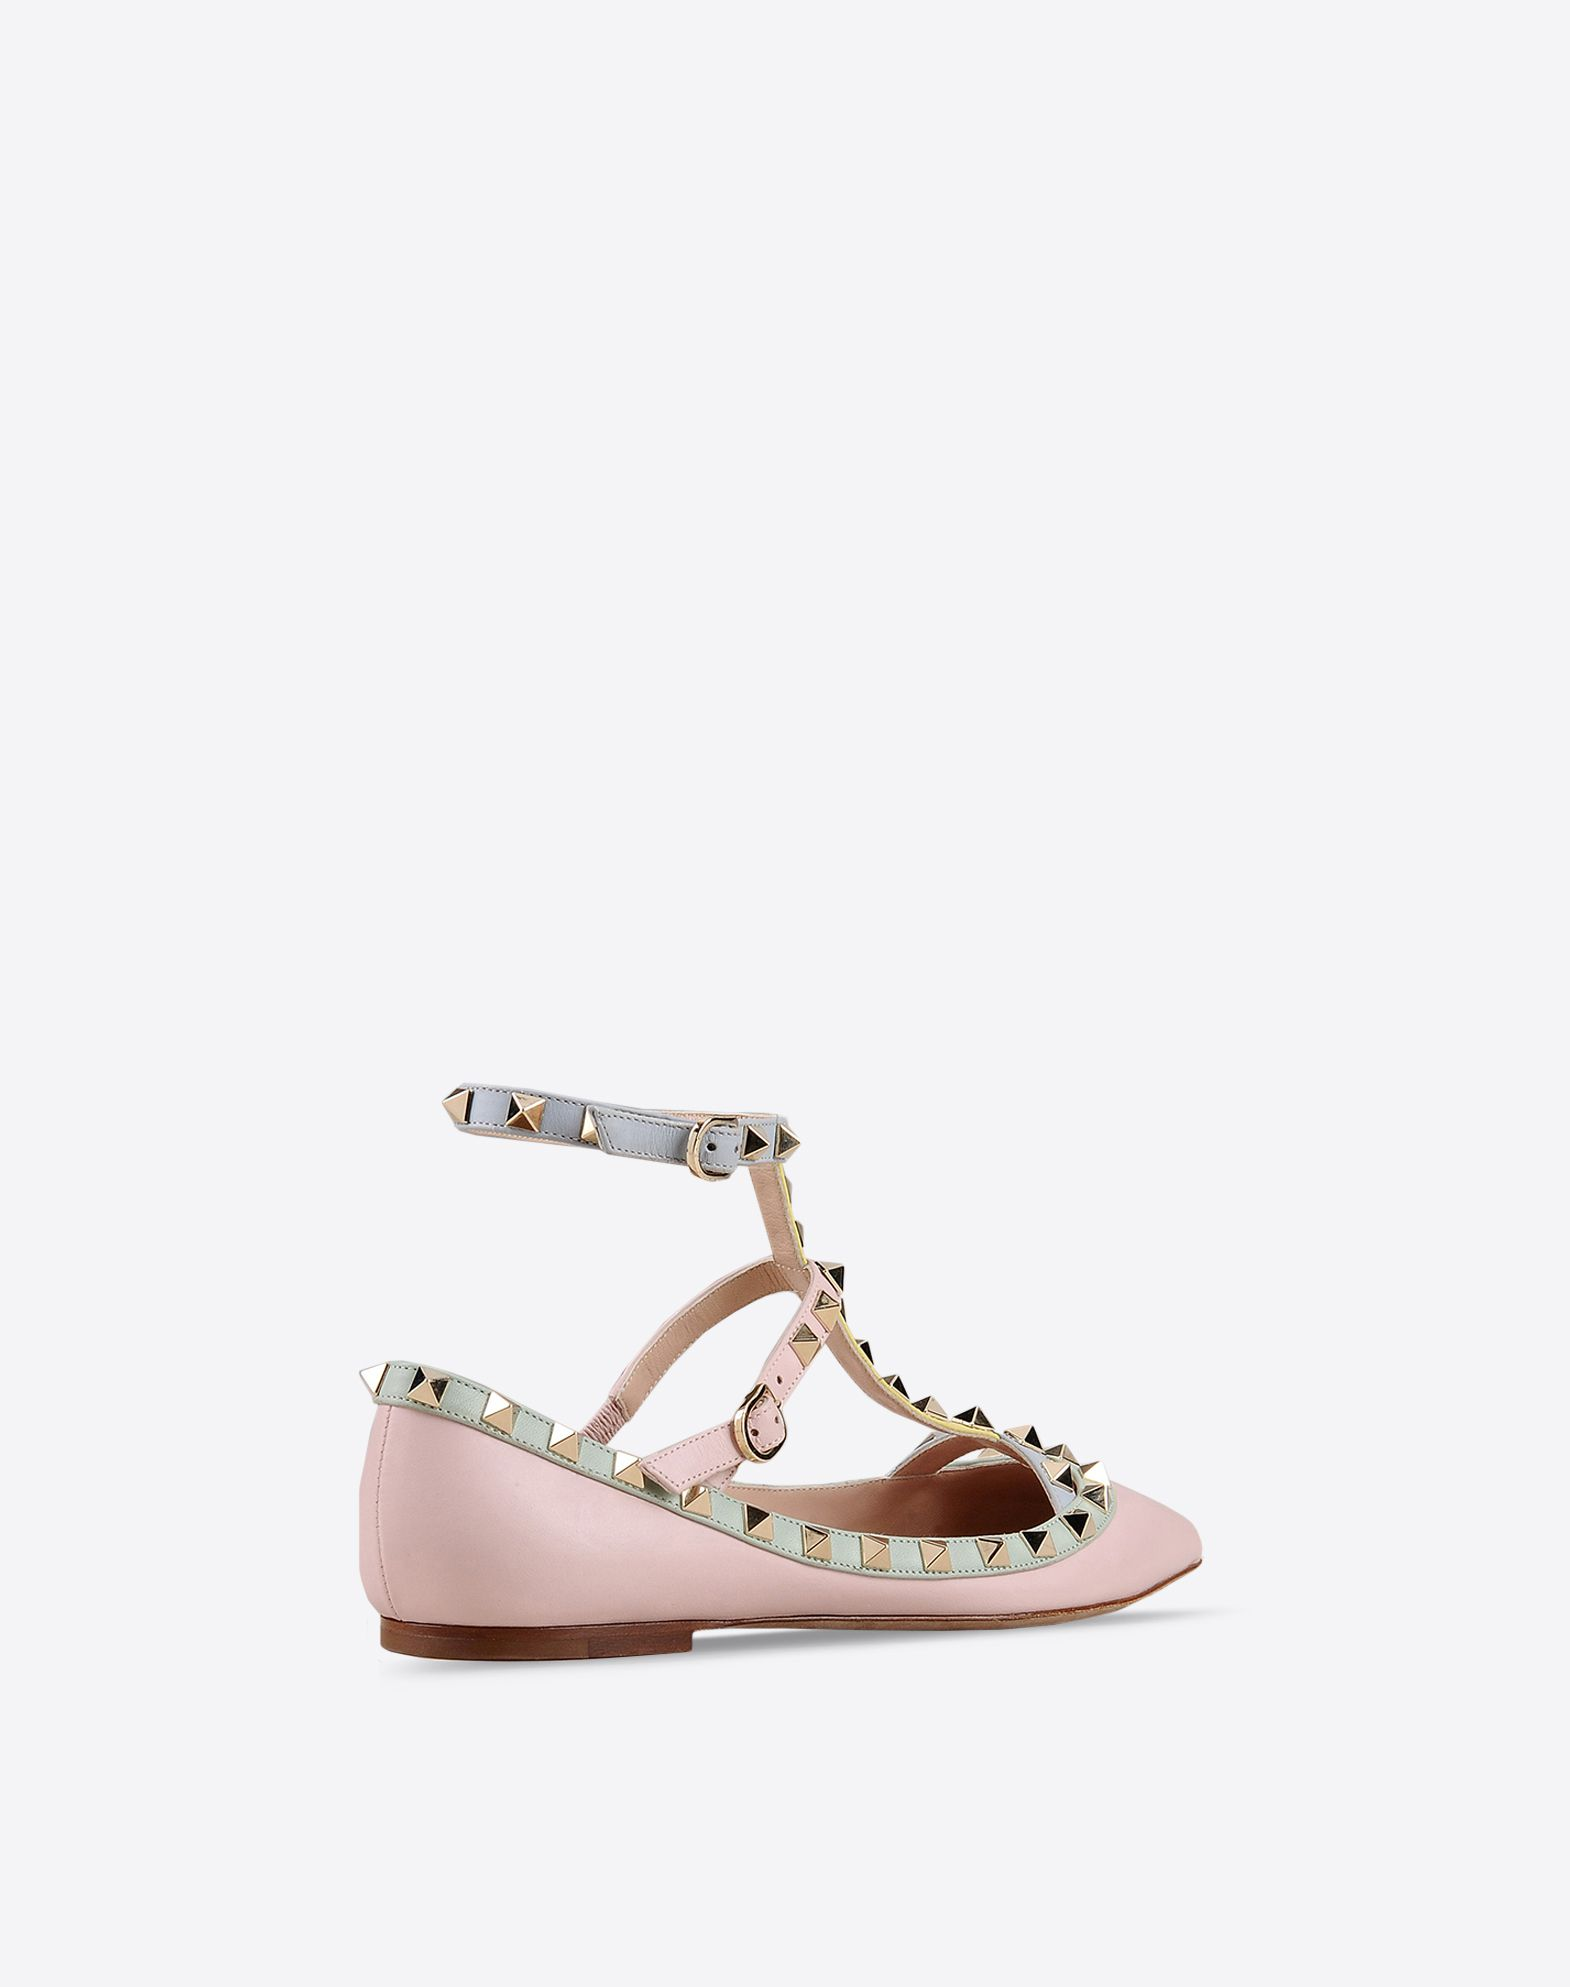 VALENTINO Studs Multicolor Pattern Buckling ankle strap closure Leather sole Narrow toeline  44799278lr